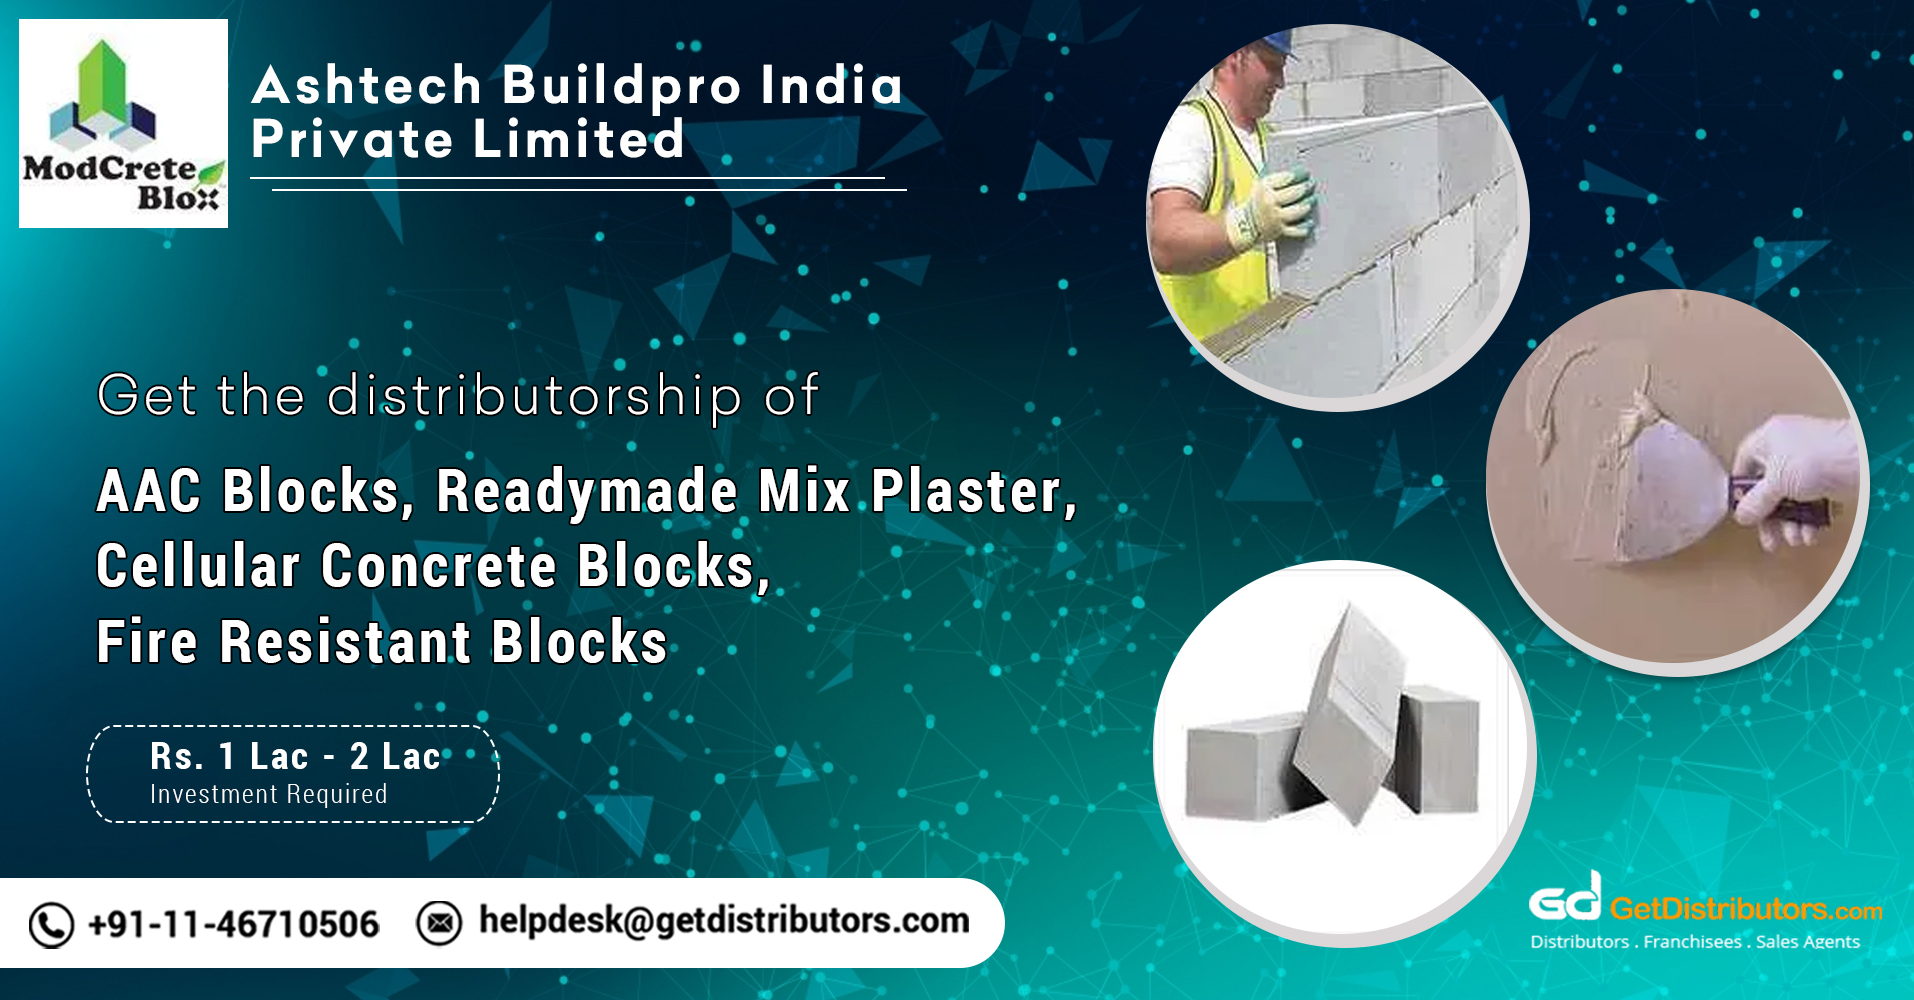 Superior Quality Building & Construction Material & Supplies For Distribution